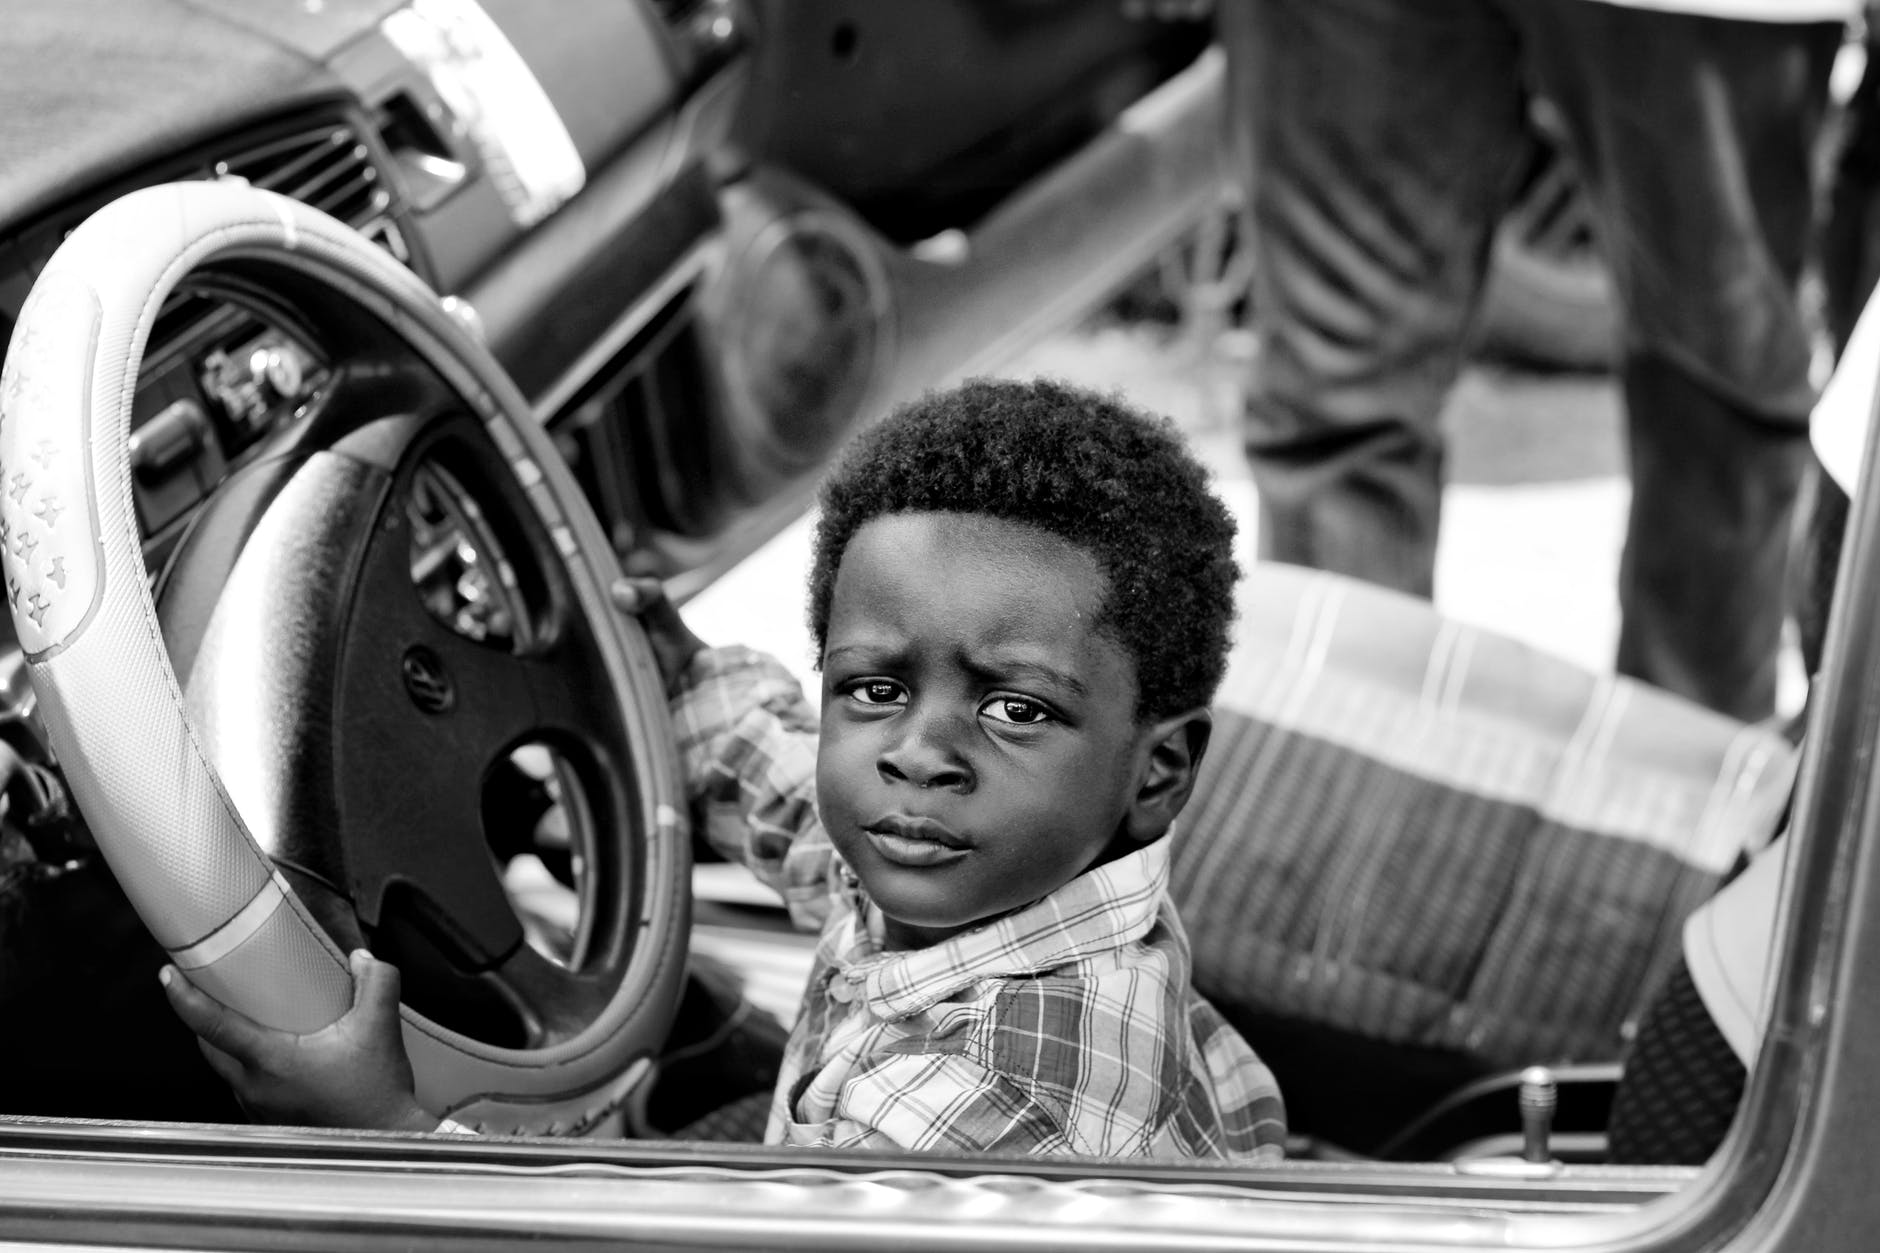 grayscale photo of boy riding car